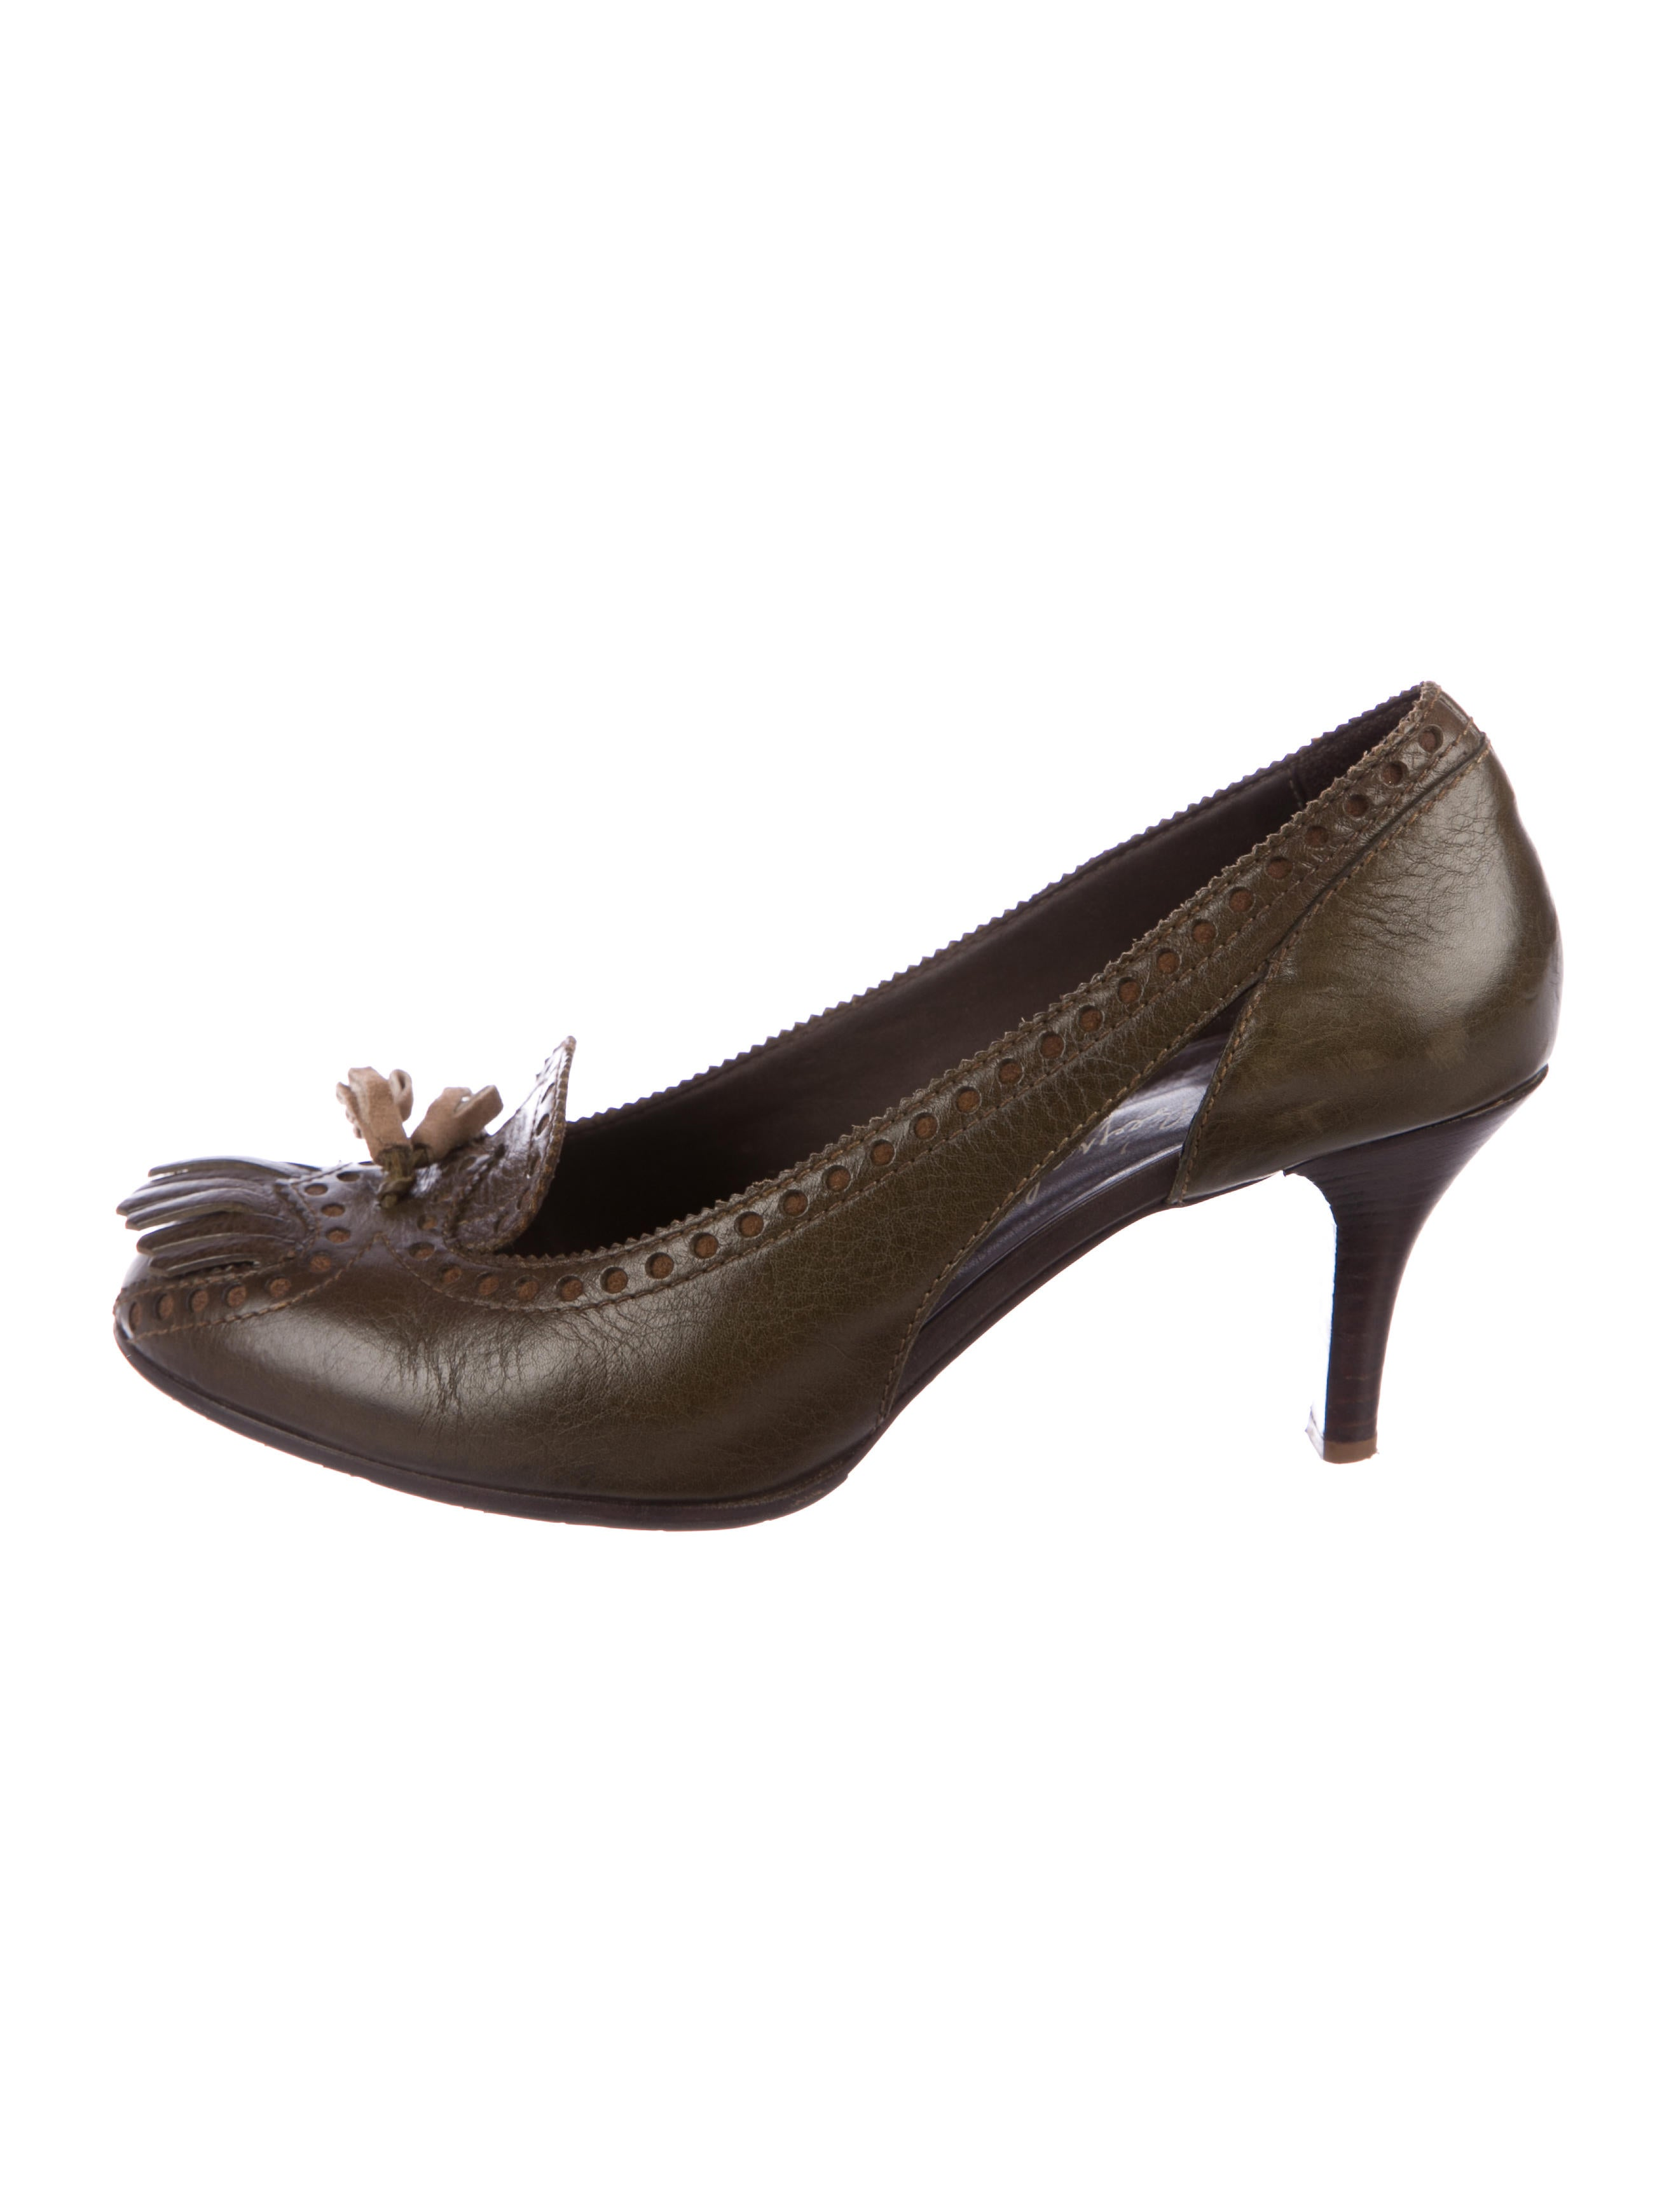 Henry Beguelin Leather Round-Toe Pumps discount geniue stockist find great very cheap sale online clearance official site footaction PdlvgSDyny